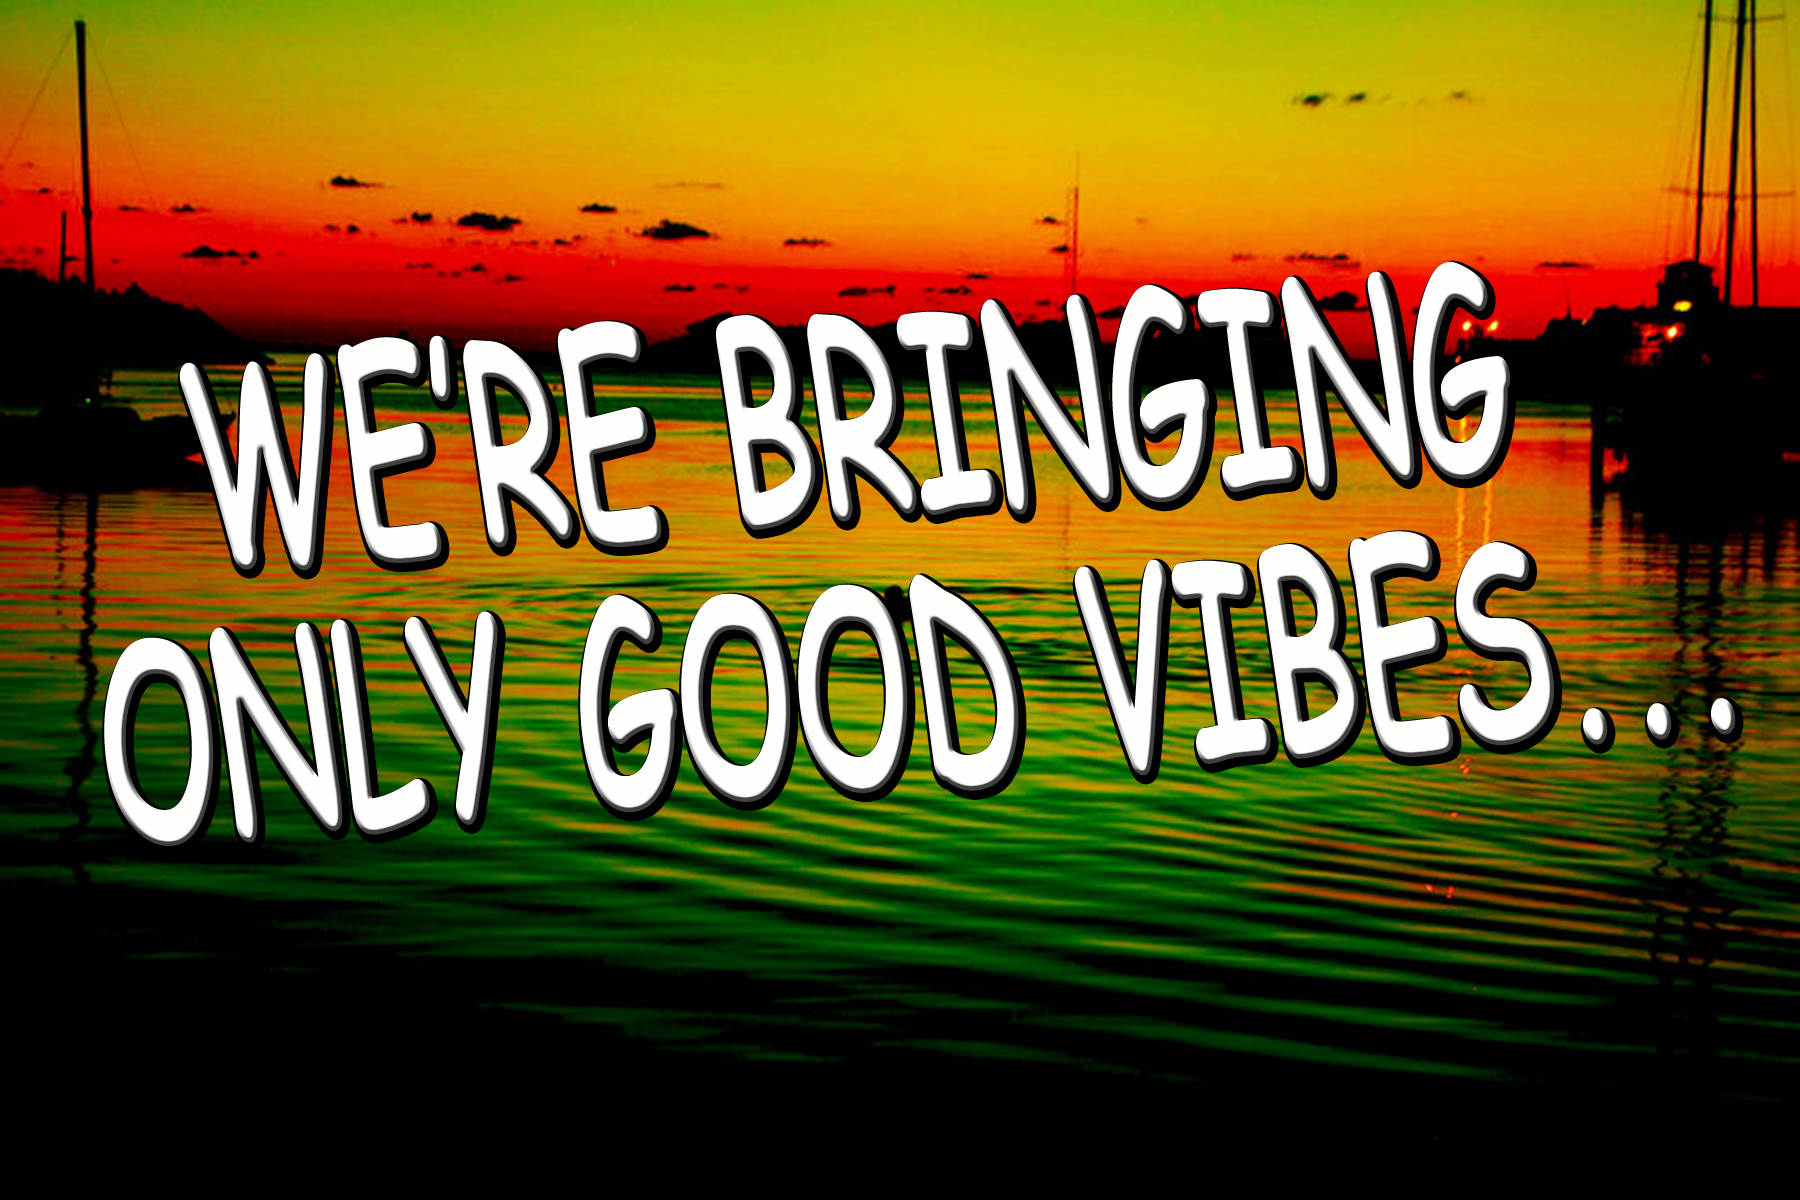 Welcome to the new GoodVibesRadio Online Radio Station! GoodVibesRadio.net is owned and operated by TRU.Entertainment. We will be streaming the best of all different types of Reggae and Reggae influenced music and artist!!! Artist like Bob Marley on down to Sublime and everything in between. We are always open to music suggestions and request!!! Please do not be shy! We need to know what you want and like to hear to get you feeling the Good Vibes!!! Please share our page and station with all your friends and family!!! Bless up!